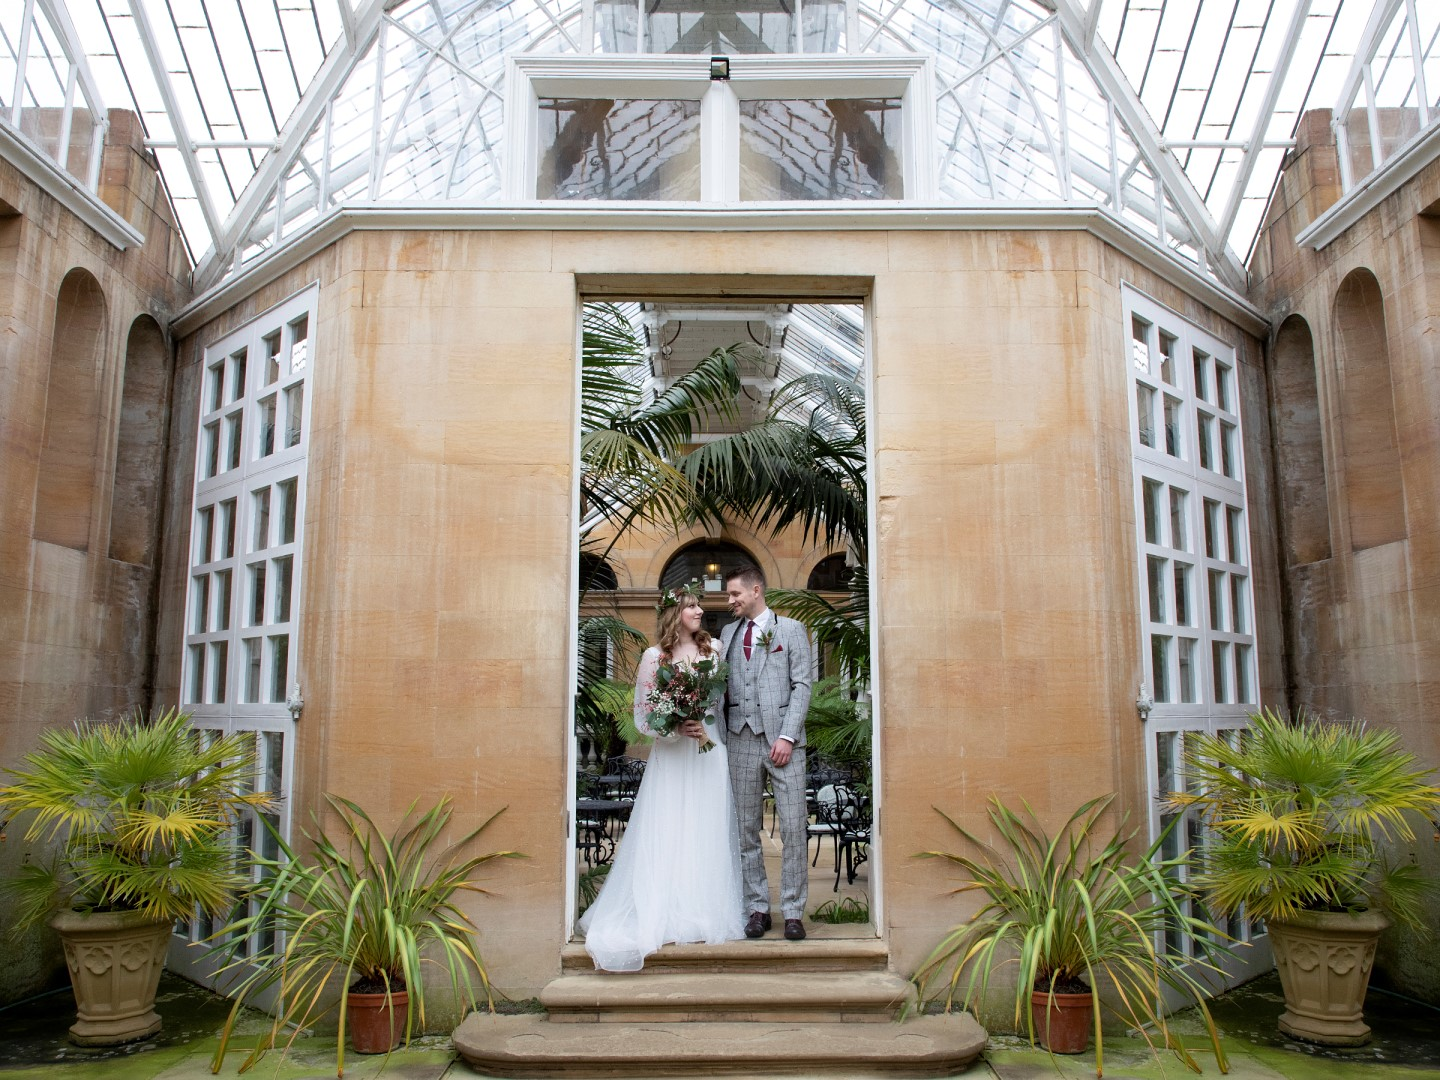 Tropical Boho Wedding- Pink Photographics- Greenhouse Wedding- Harlaxton Wedding- Unconventional Wedding- Unique Wedding Ideas 17